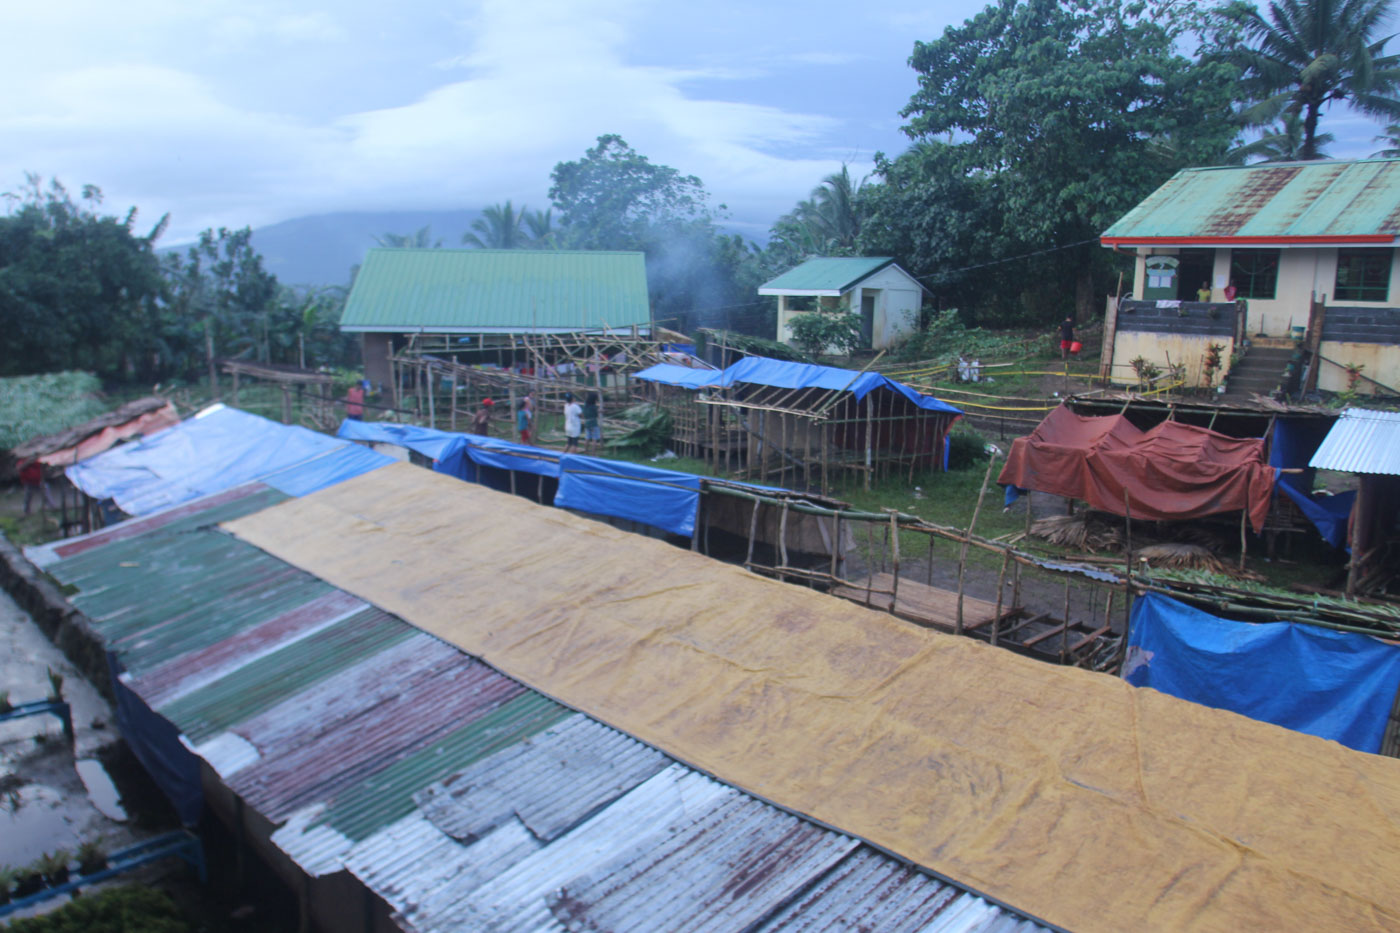 TEMPORARY SHELTERS. Albay residents who fled their homes due to the threat of a Mayon Volcano eruption are in need of temporary shelters. Photo by Rhaydz Barcia/Rappler